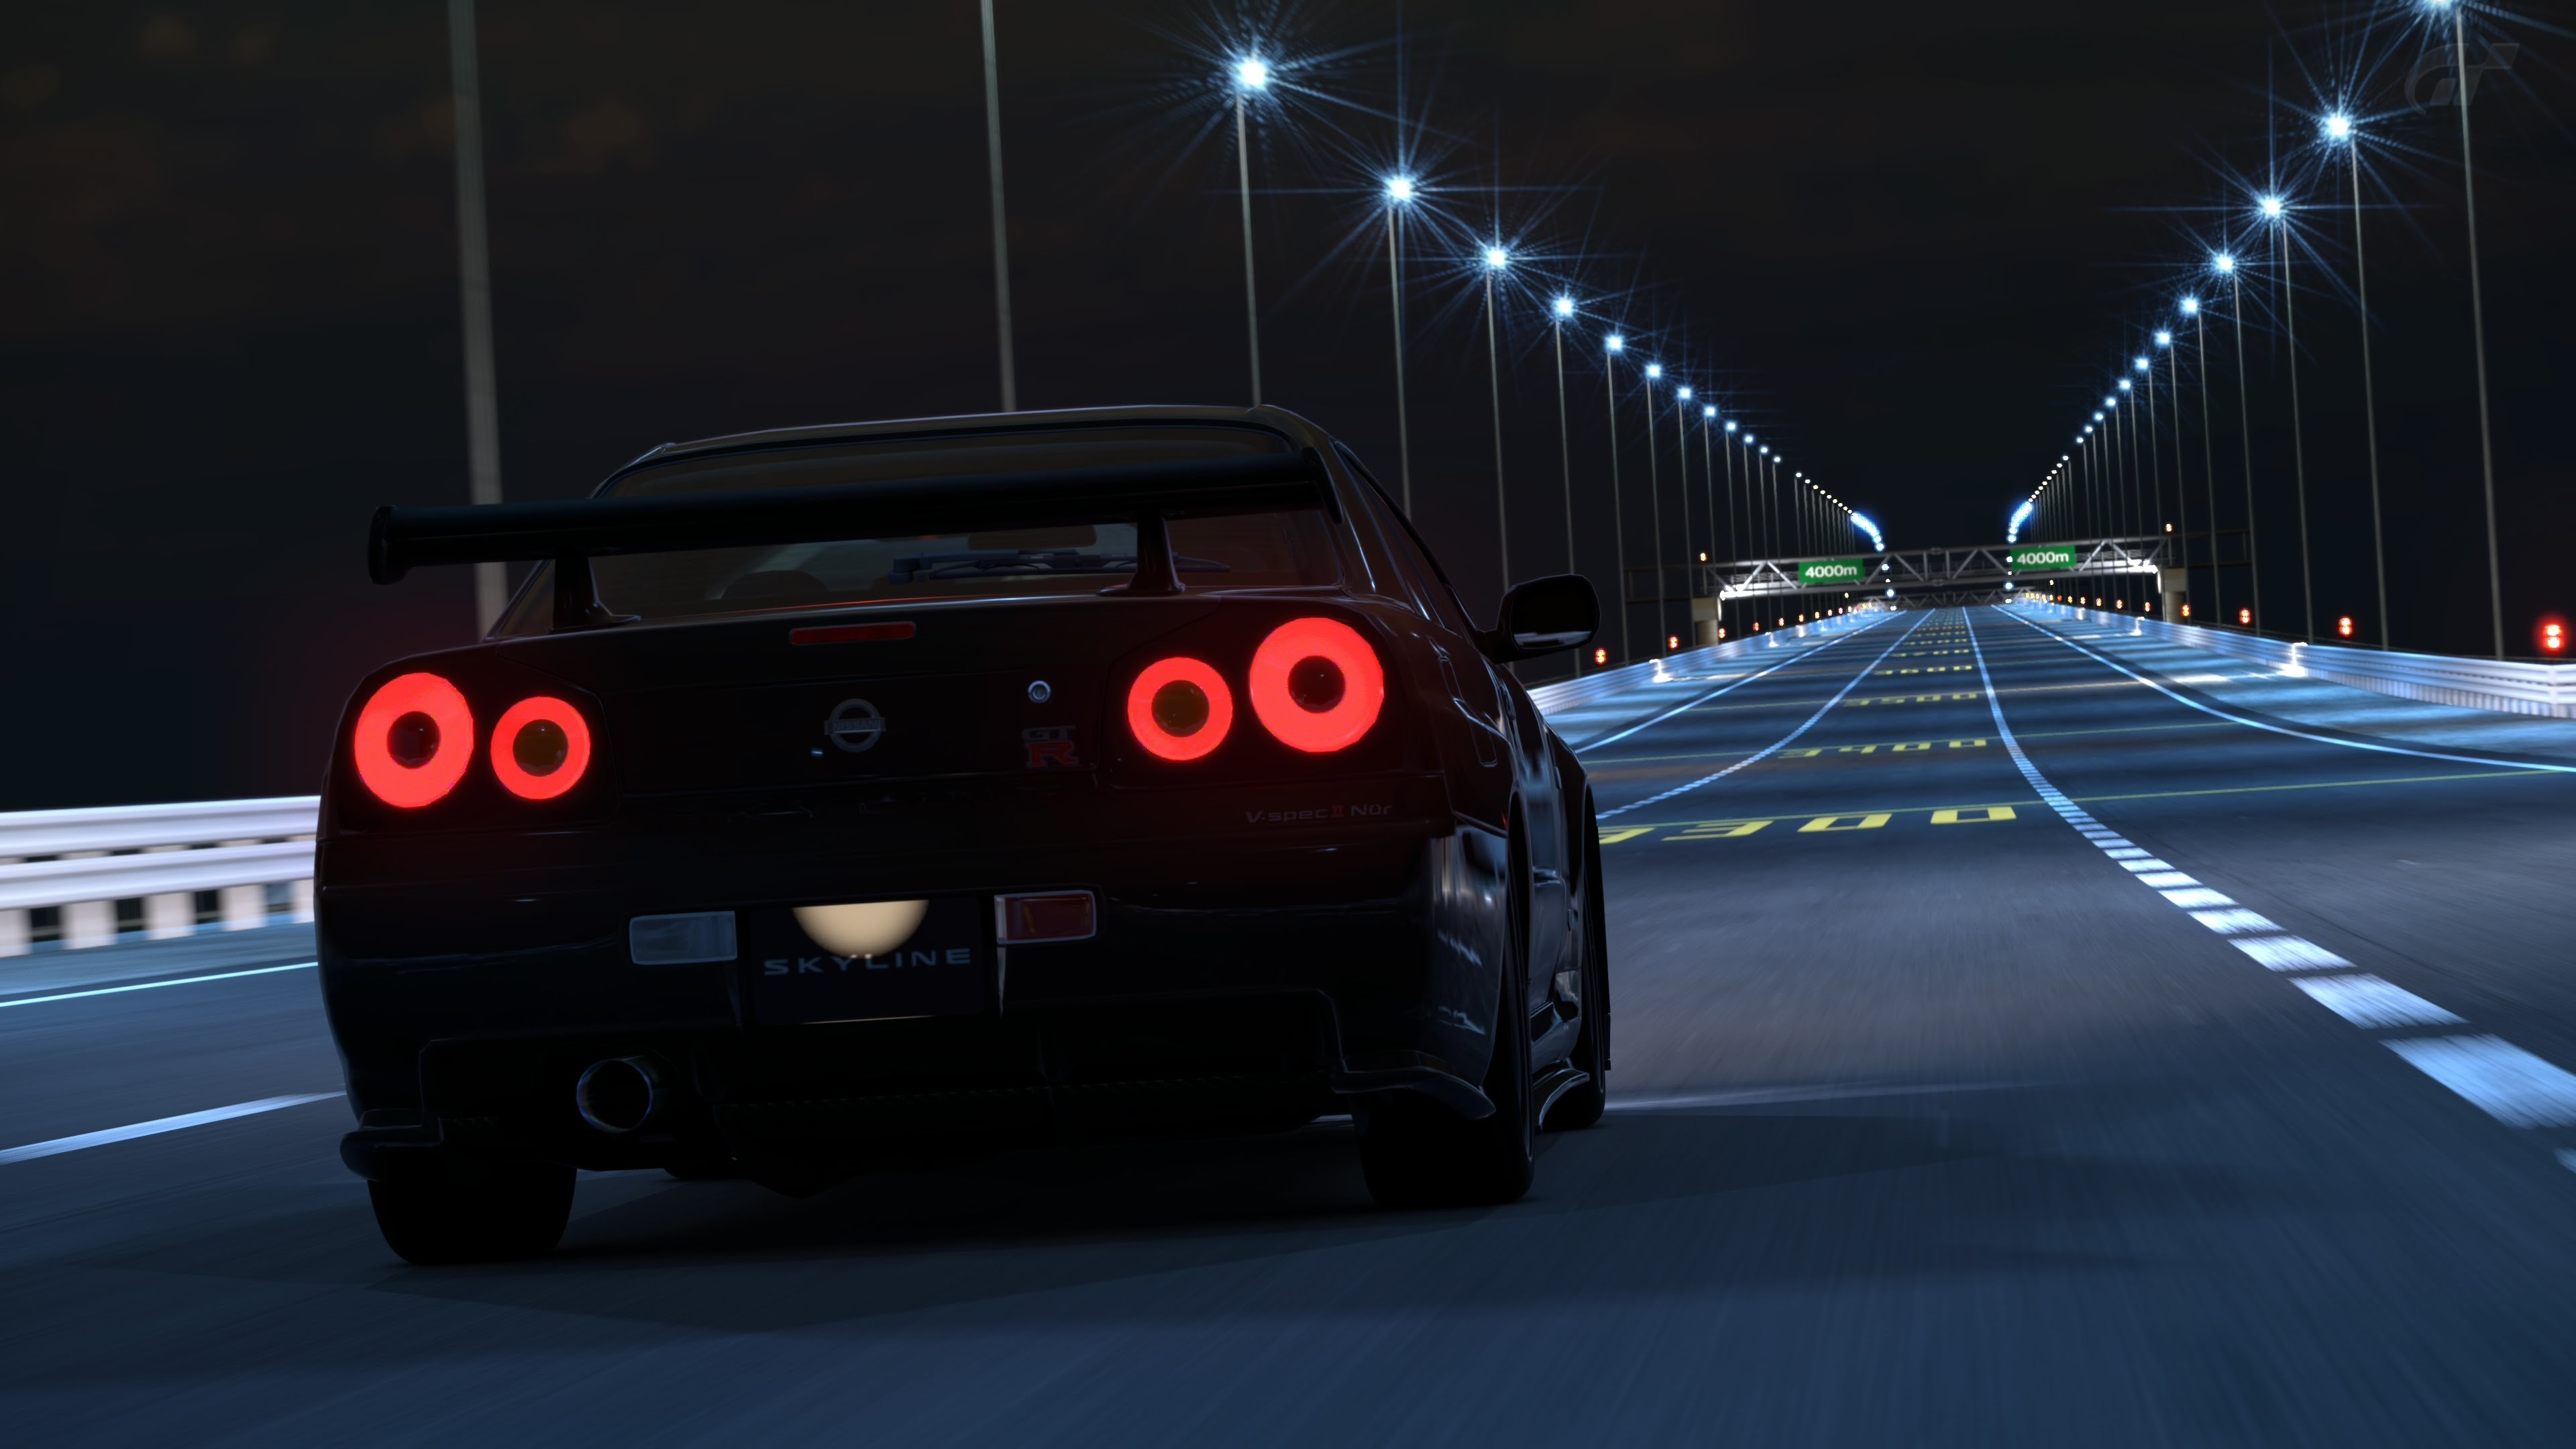 3840x2160 Need For Speed 2015: Corridas com ele NISSAN SKYLINE GT-R R34